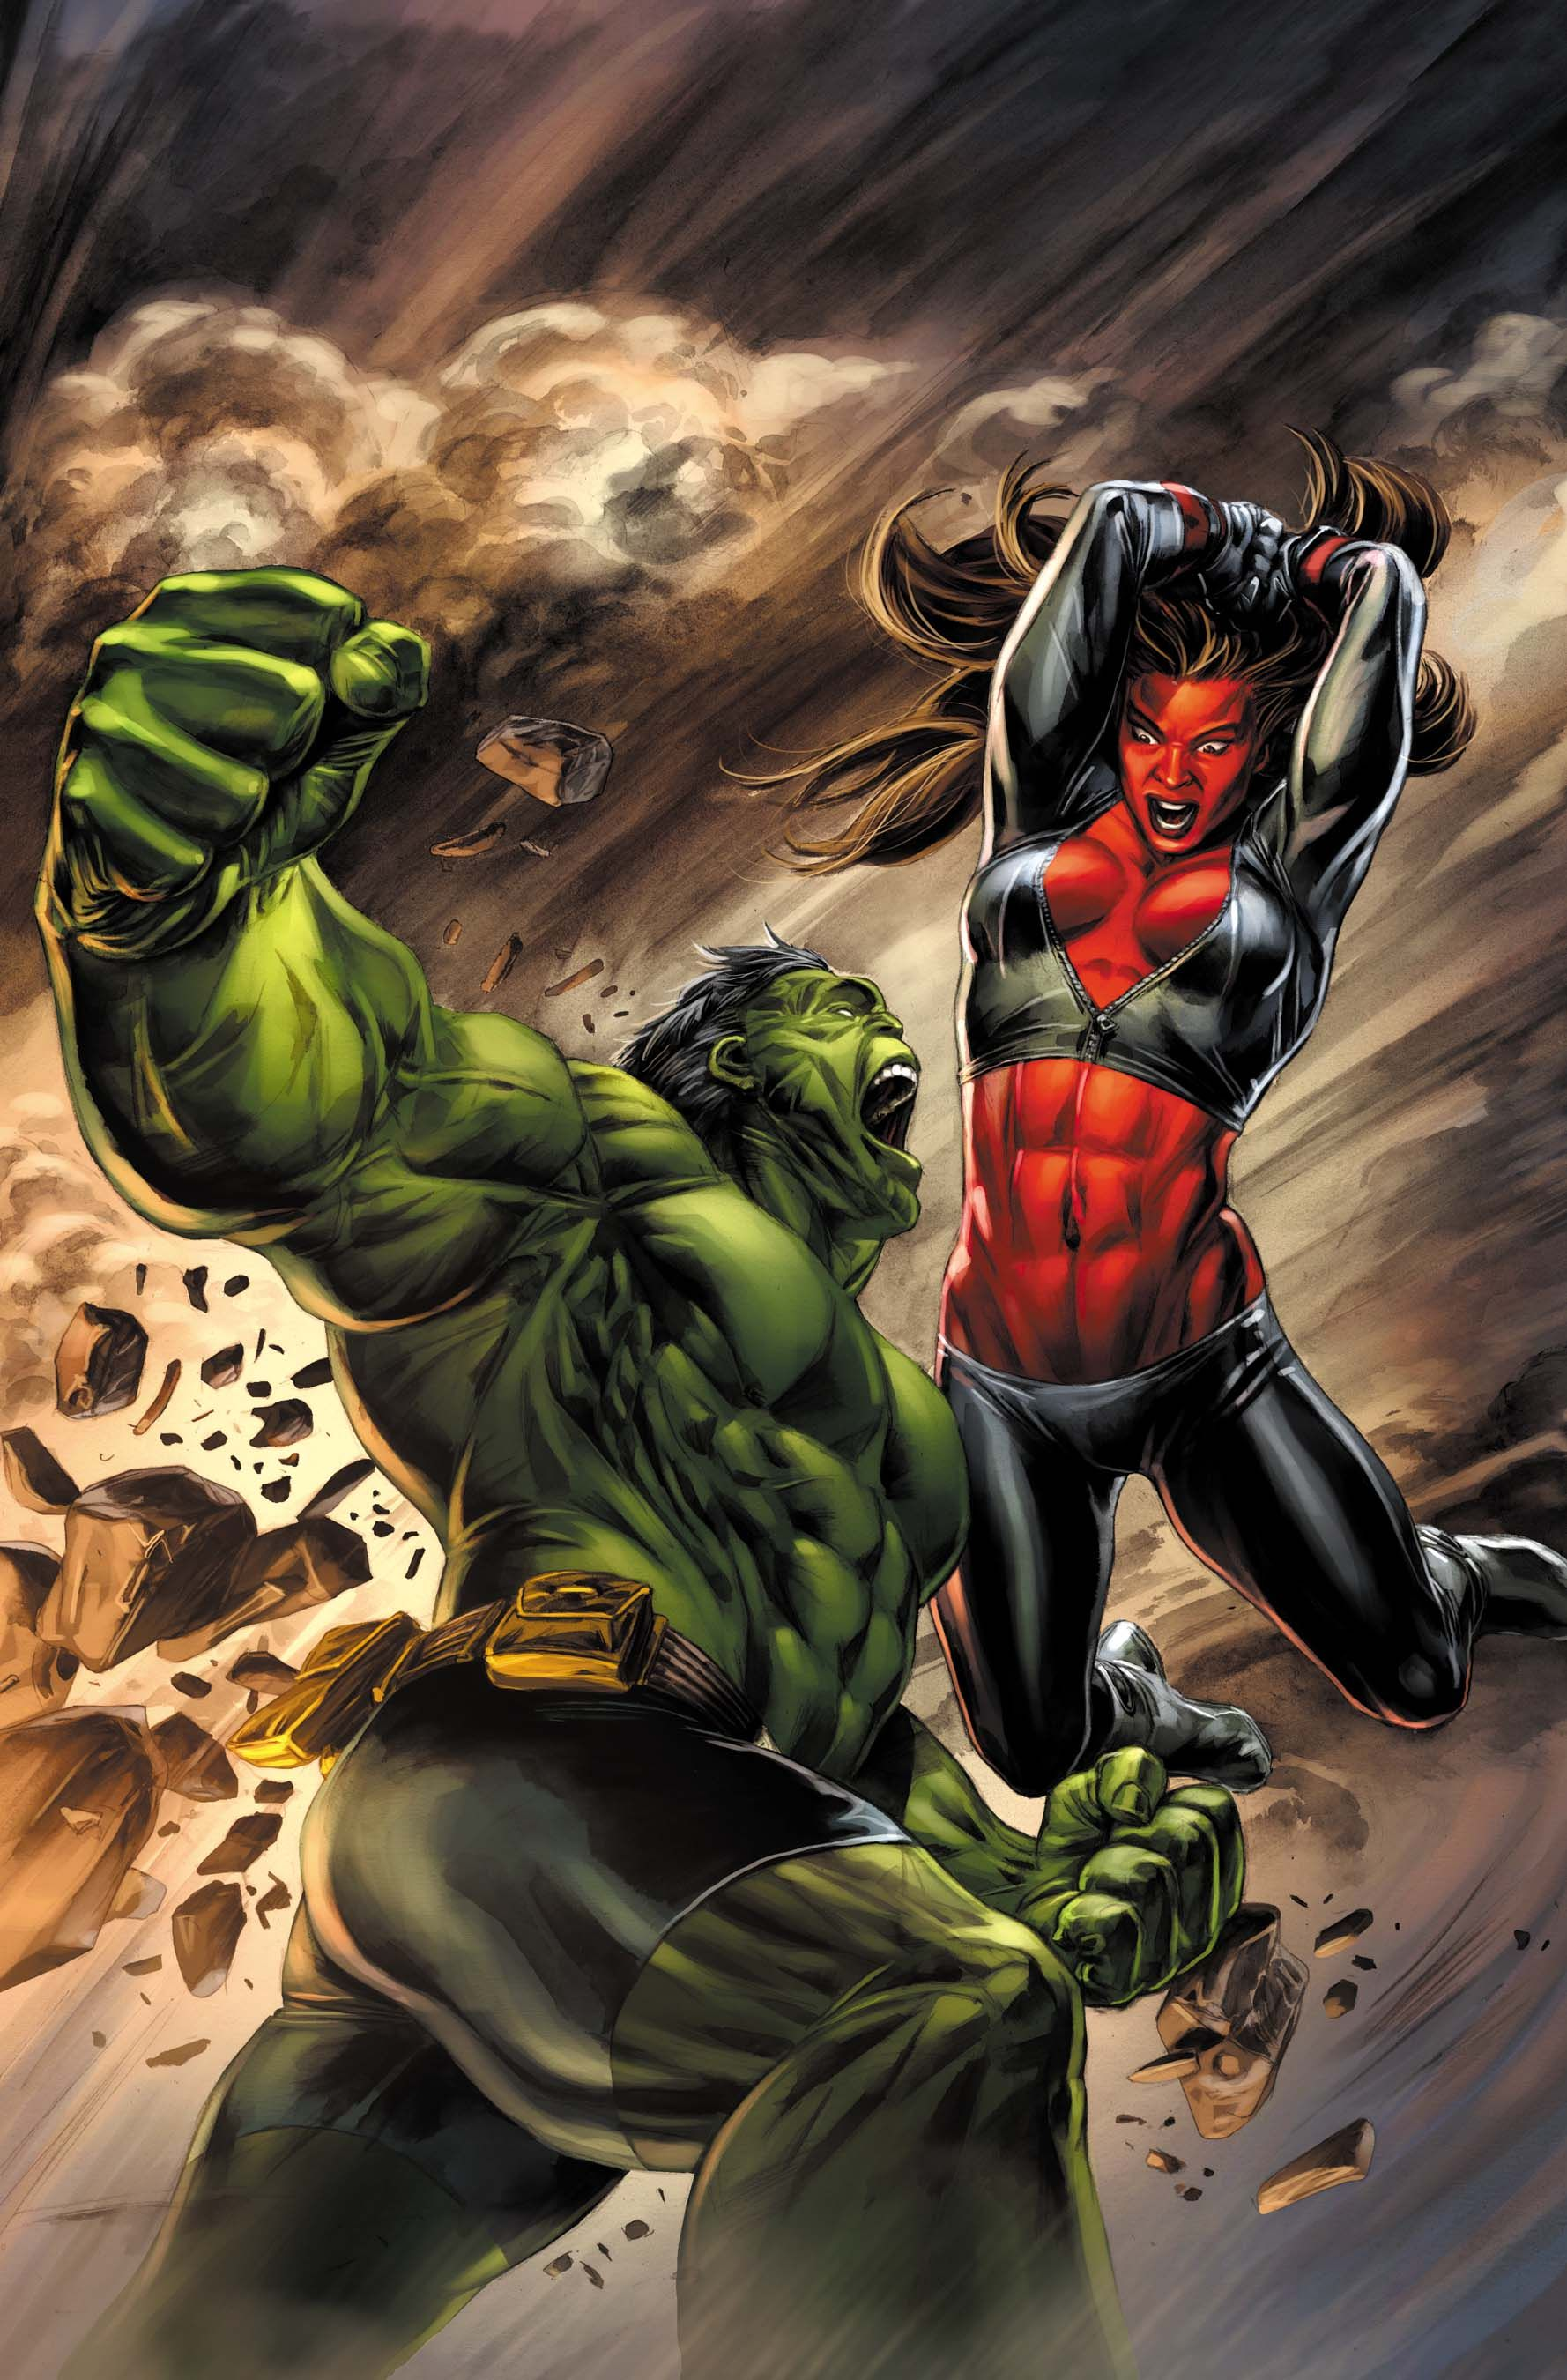 1000 ideas about red she hulk on pinterest - Pictures of red hulk ...